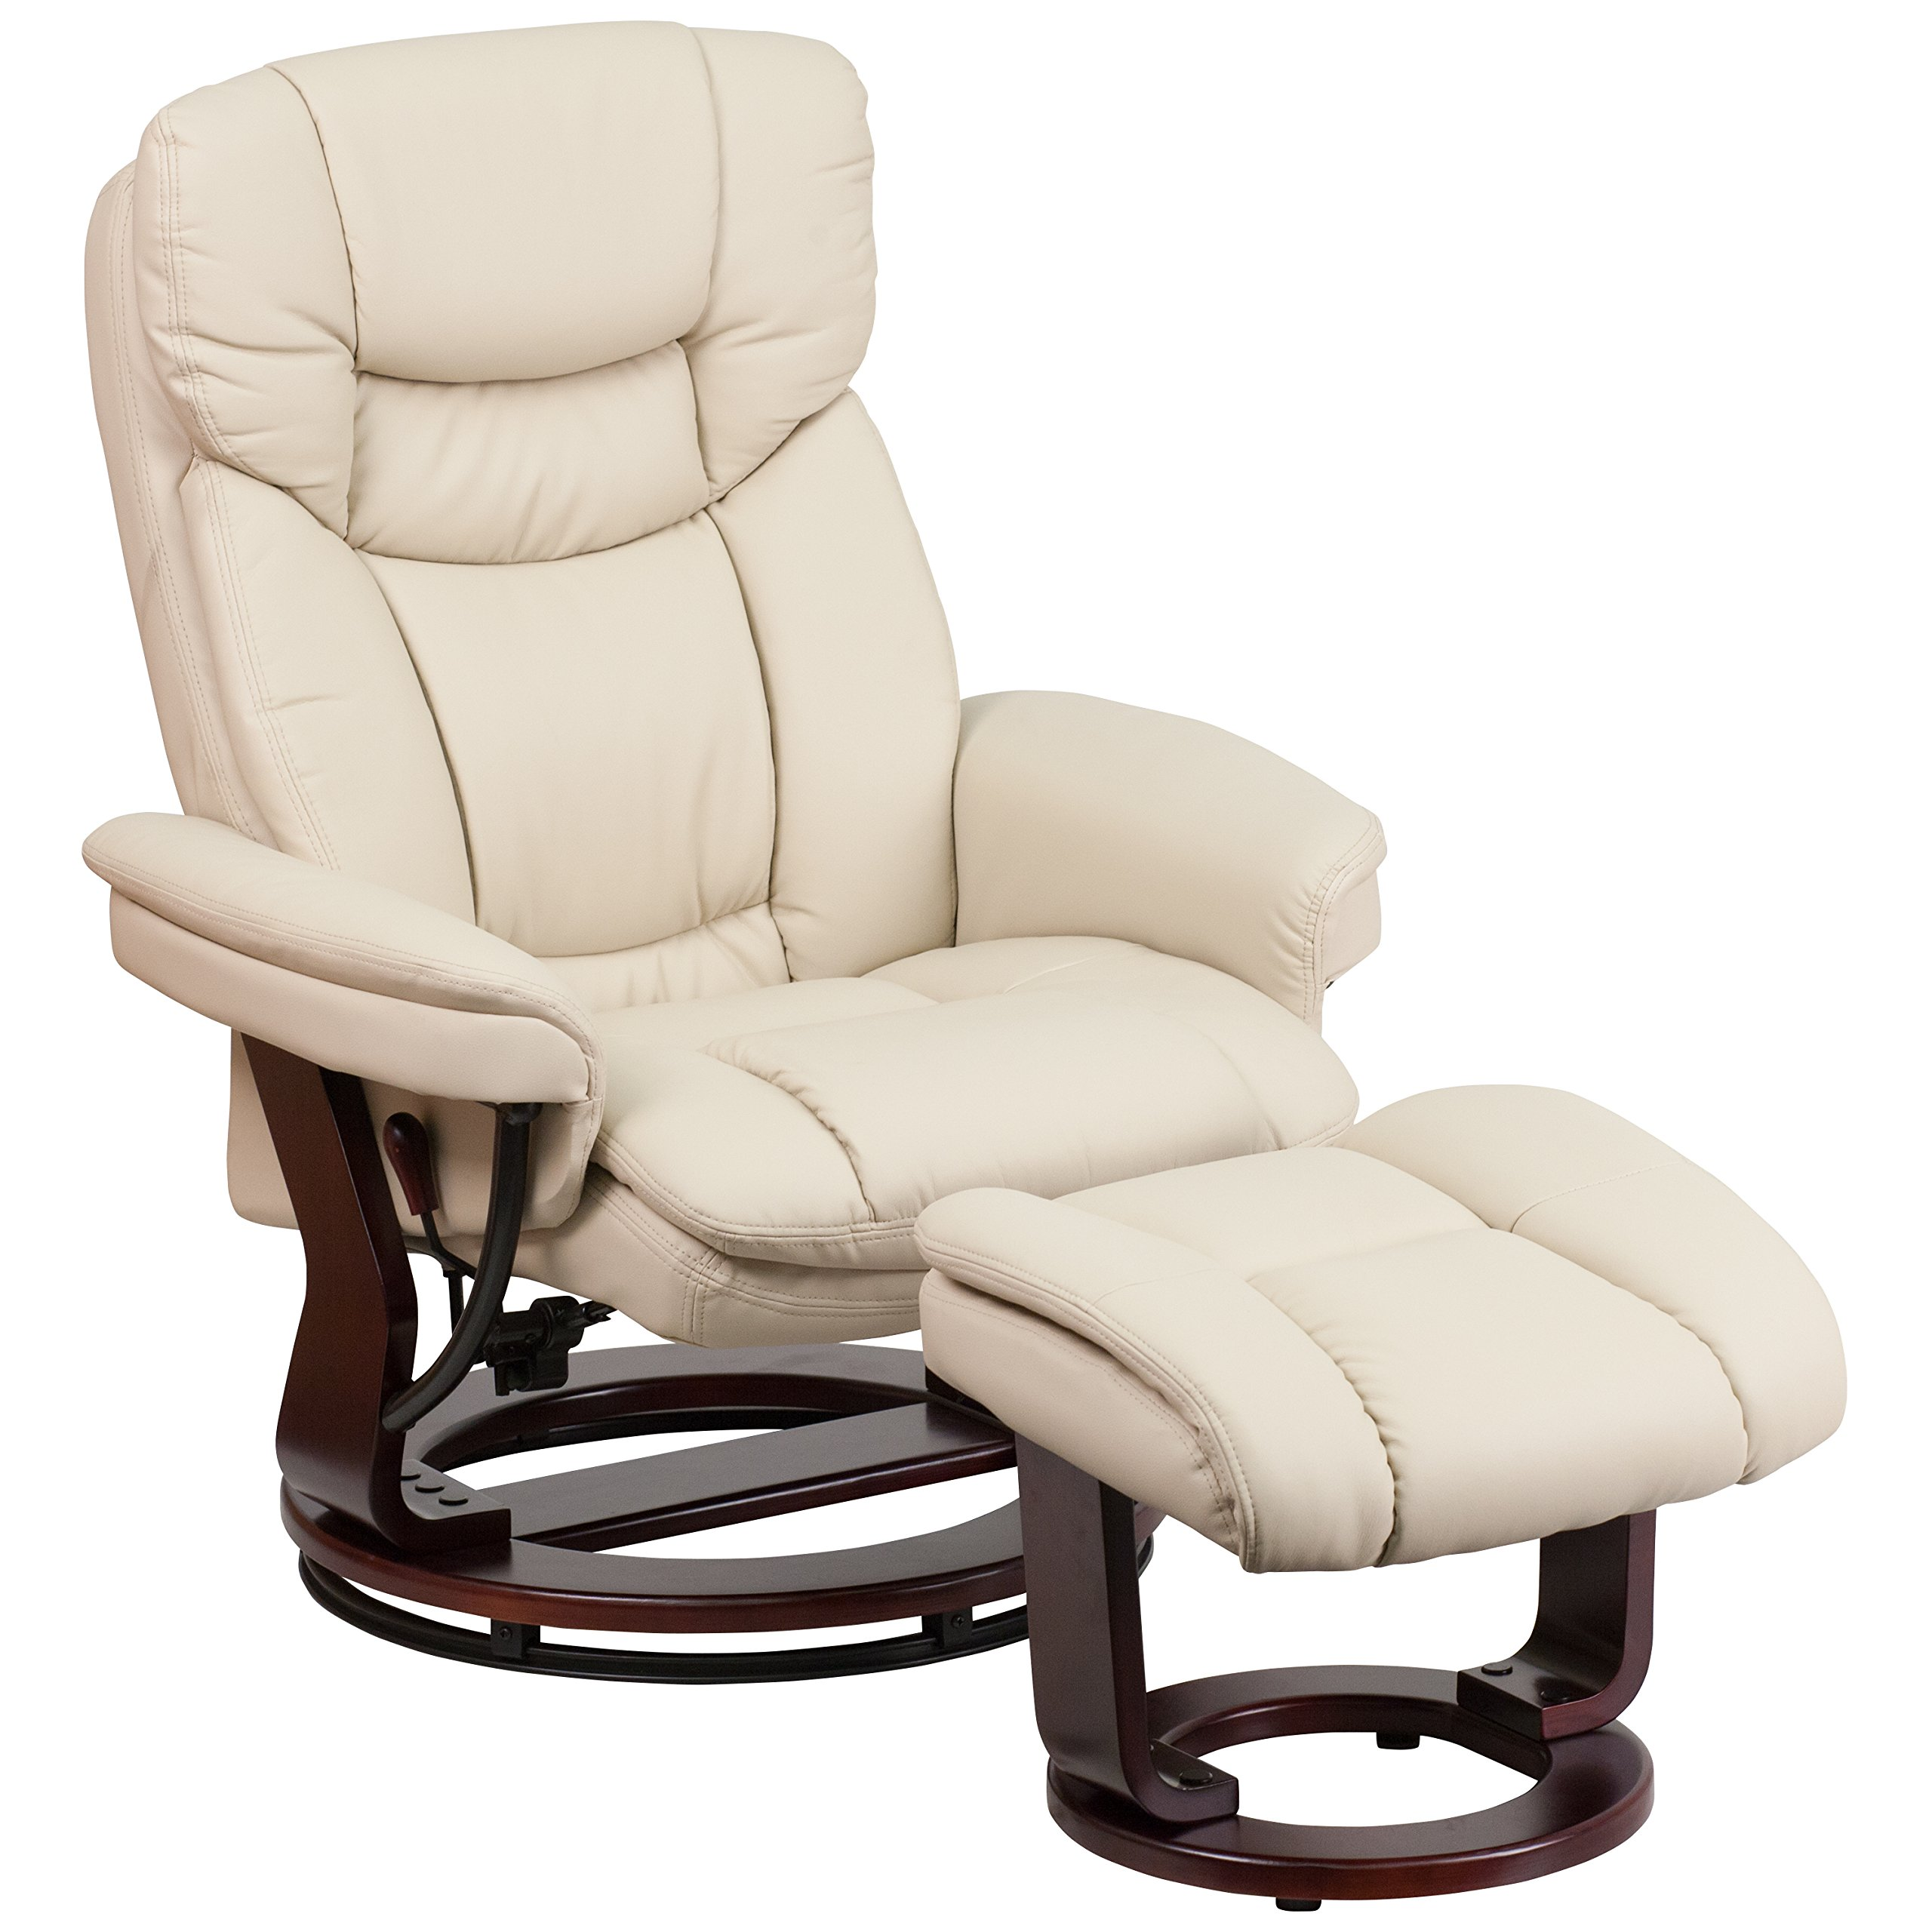 Superbe Flash Furniture Contemporary Beige Leather Recliner And Ottoman With  Swiveling Mahogany Wood Base